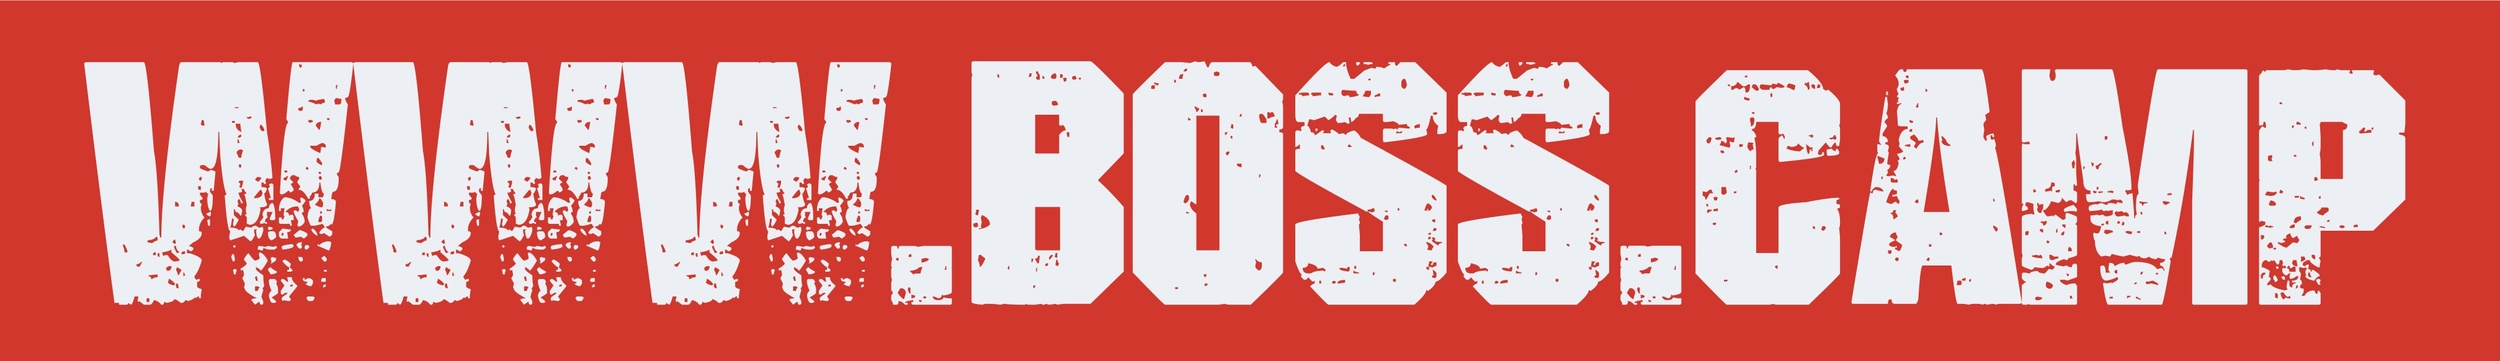 Find out how to be a boss like a boss and make managing easy at www.boss.camp jpeg